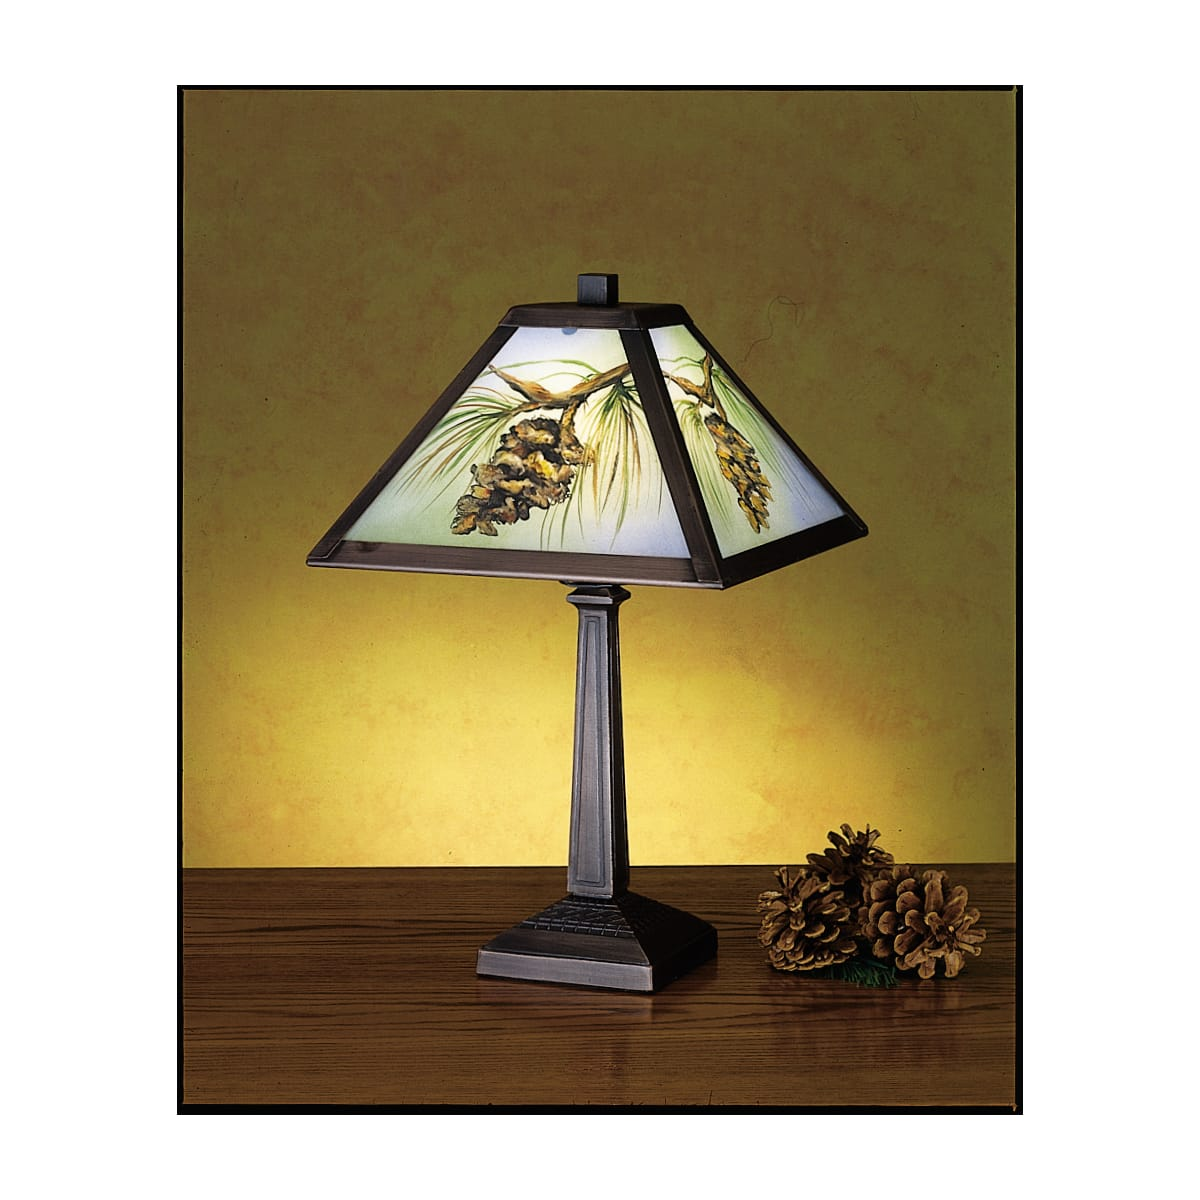 Meyda Tiffany 27498 Tiffany Glass Accent Table Lamp From The Pinecones Collection Lightingshowplace Com